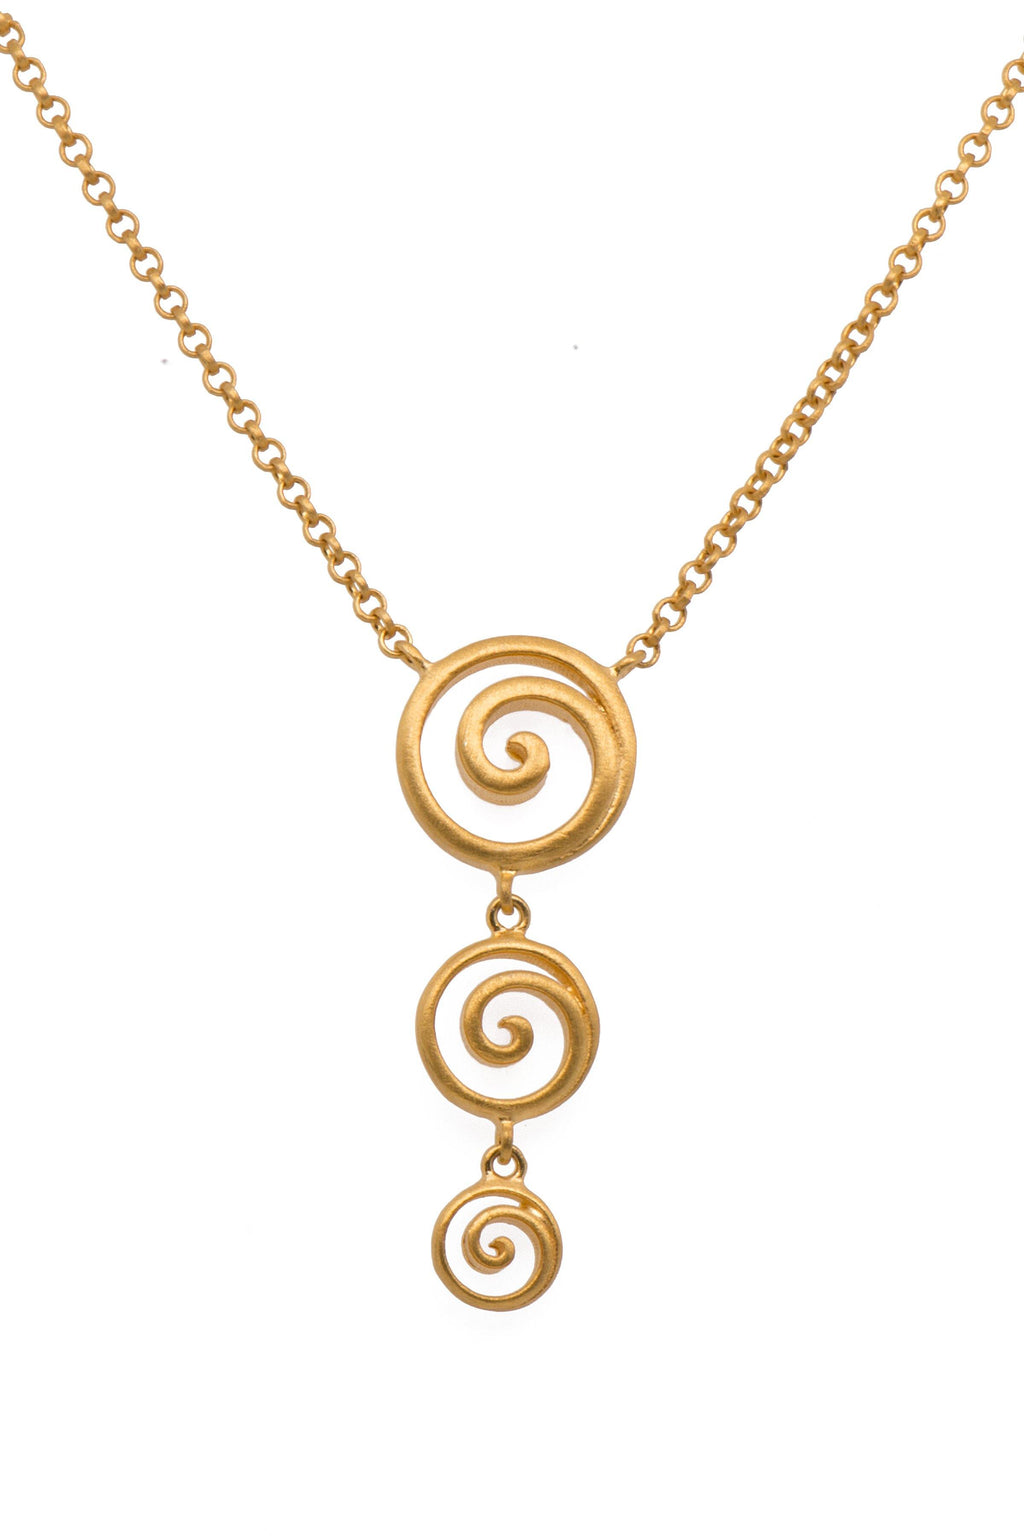 GRATITUDE TRIPLE SWIRL NECKLACE - Joyla Jewelry